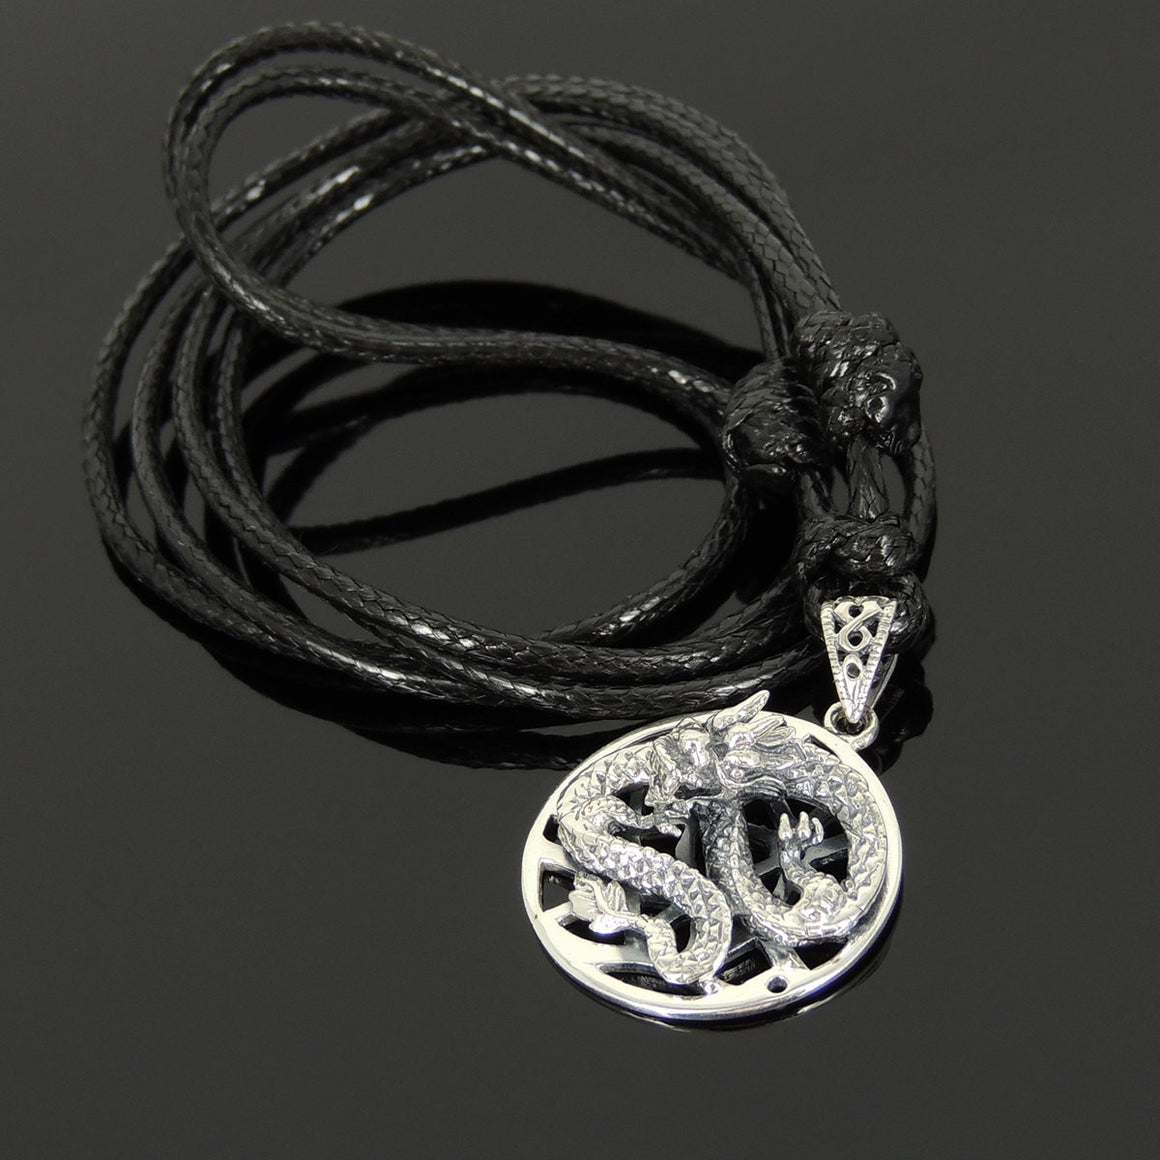 Adjustable Wax Rope Necklace with S925 Sterling Silver 3D Dragon Pendant - Handmade by Gem & Silver NK161